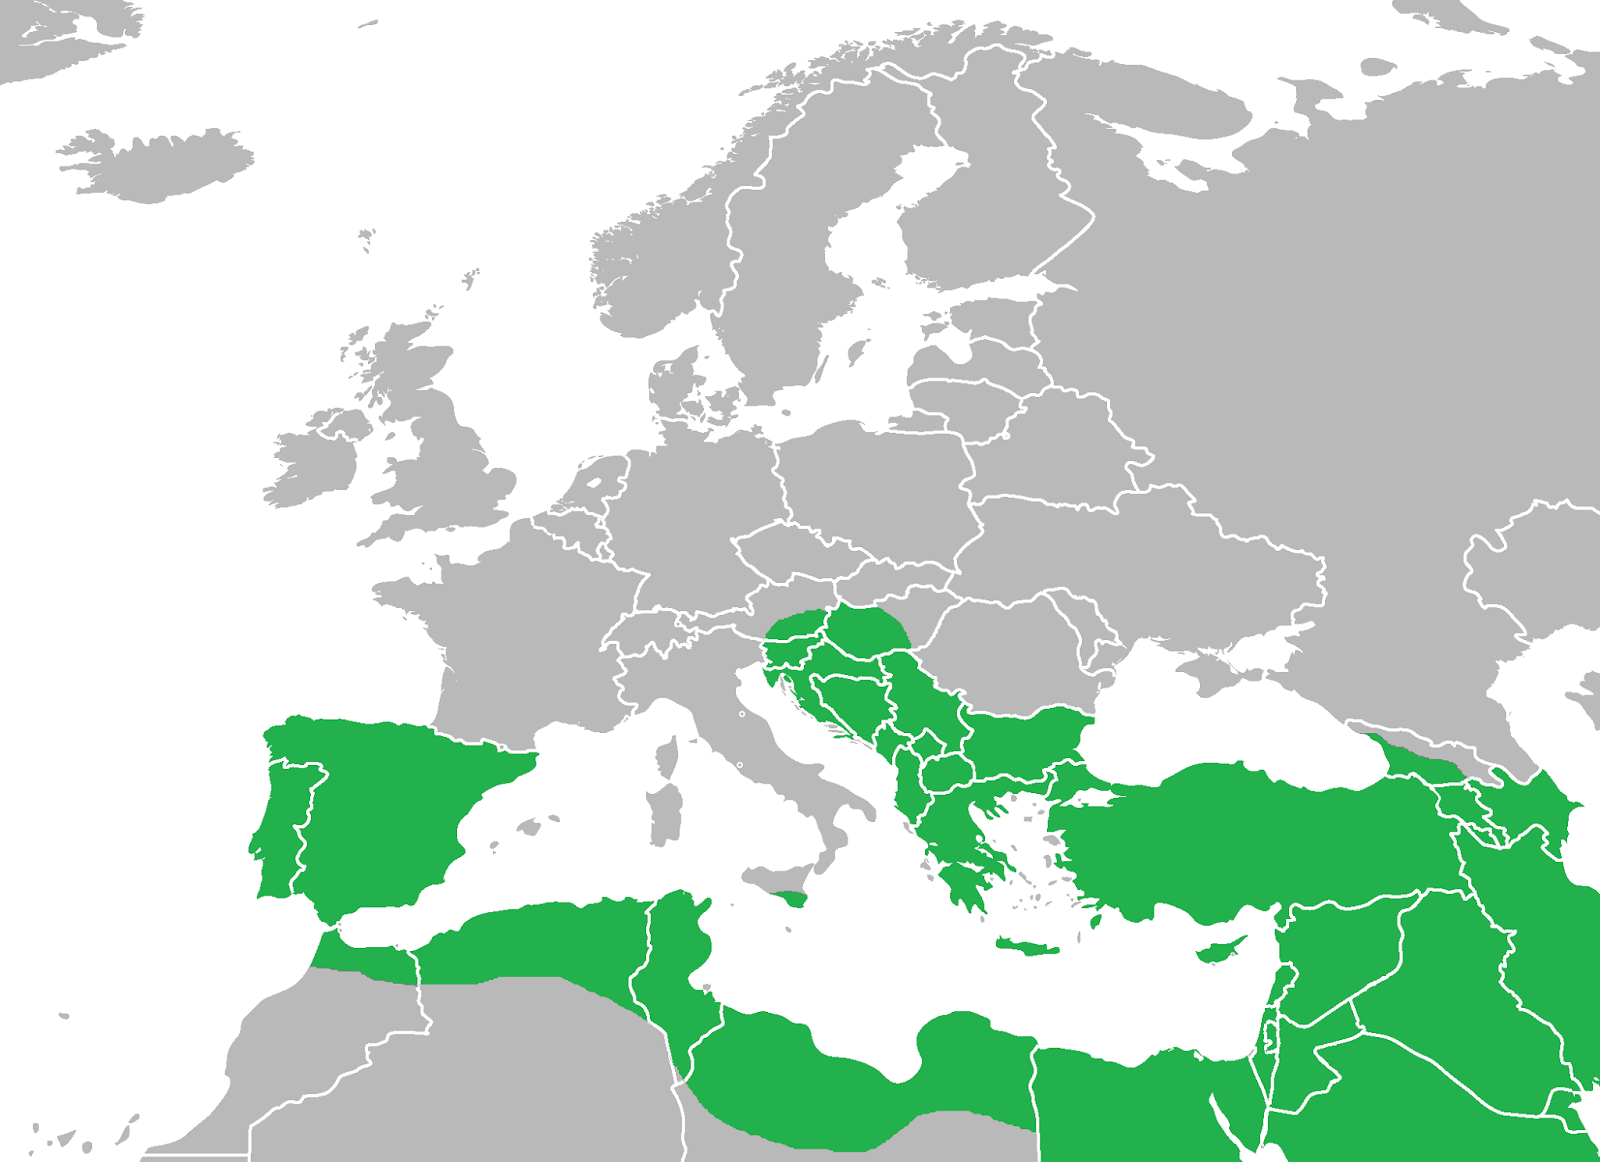 1,400 Years of Islamic Aggression: An Analysis